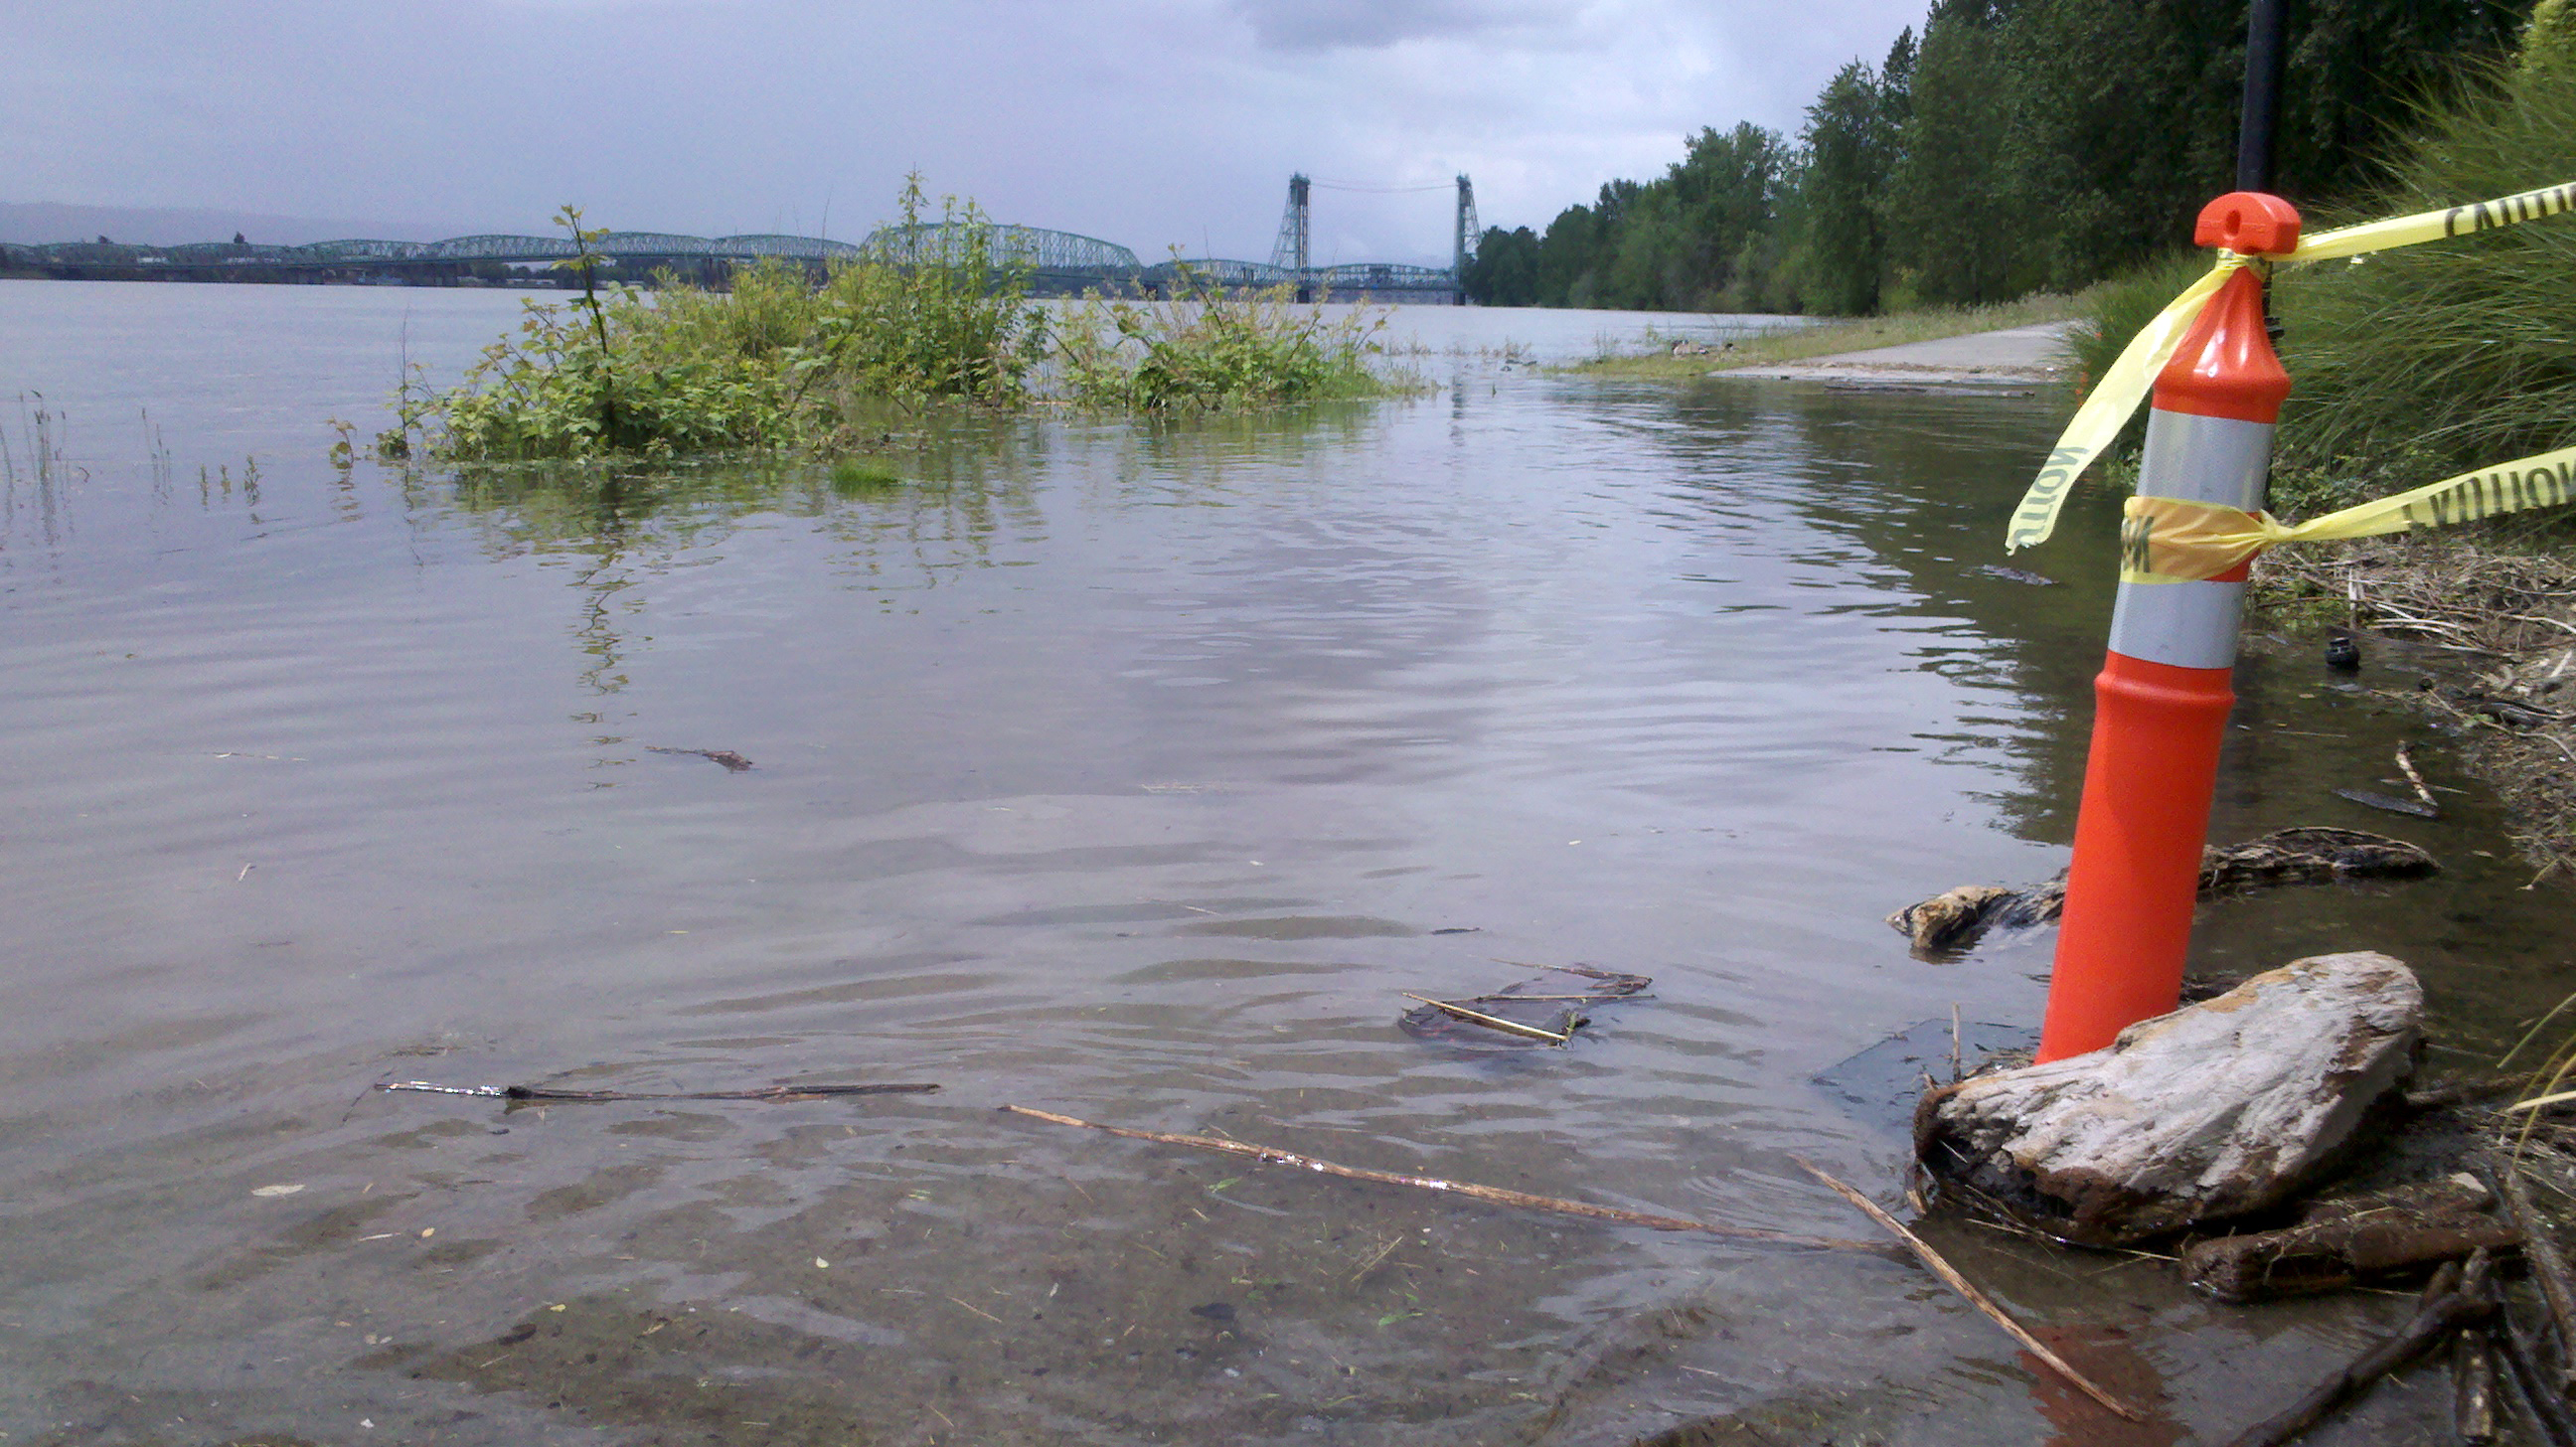 Columbia River Hits Flood Stage, Expect More Bridge Lifts Between Portland and Vancouver